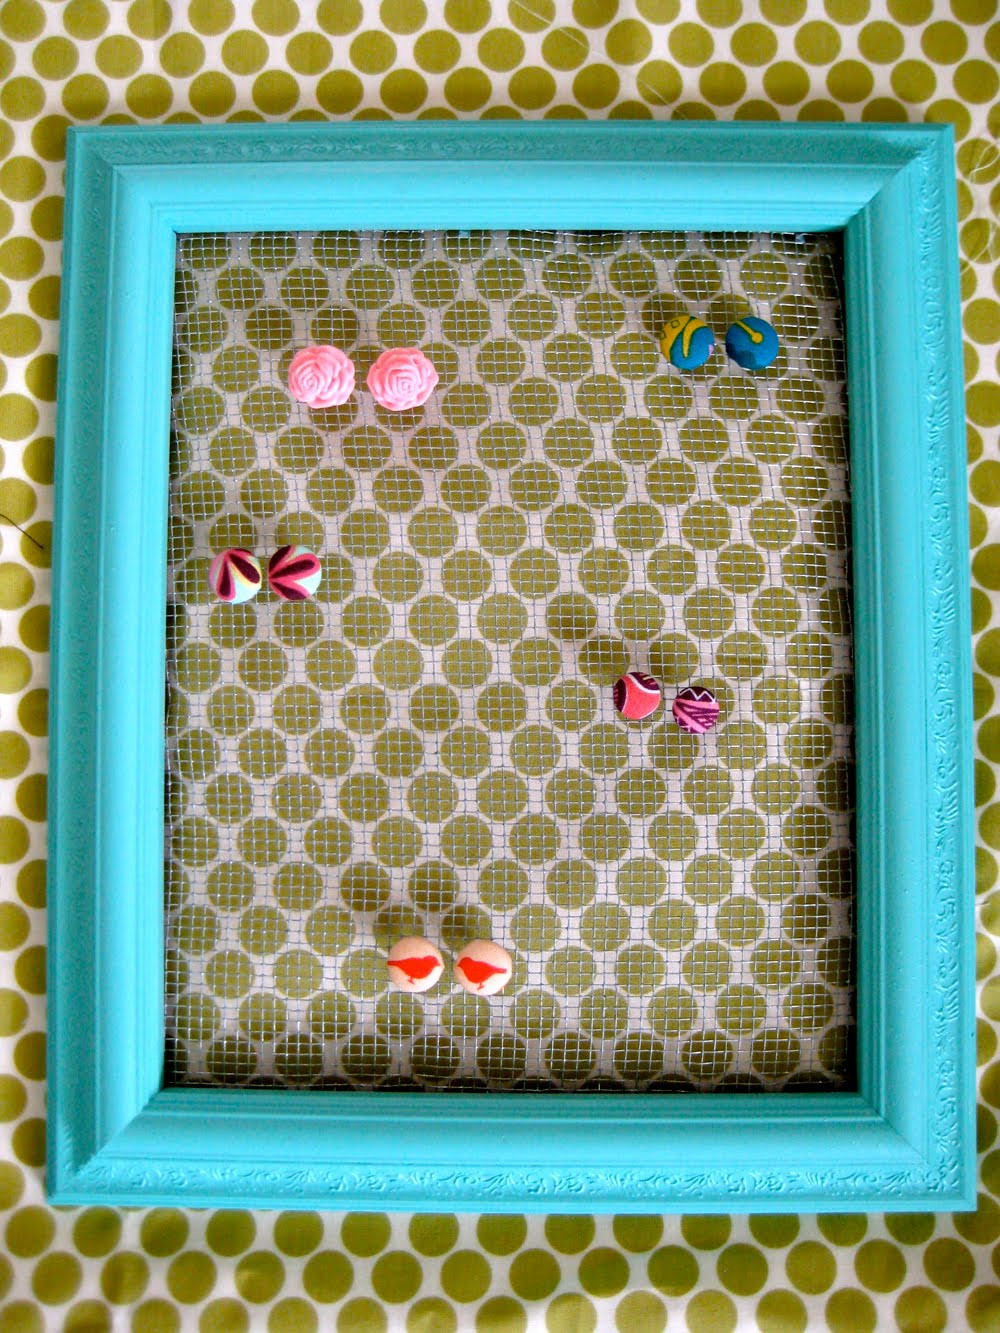 Best ideas about DIY Earring Display . Save or Pin 64 DIY Earring Holder How to's Now.